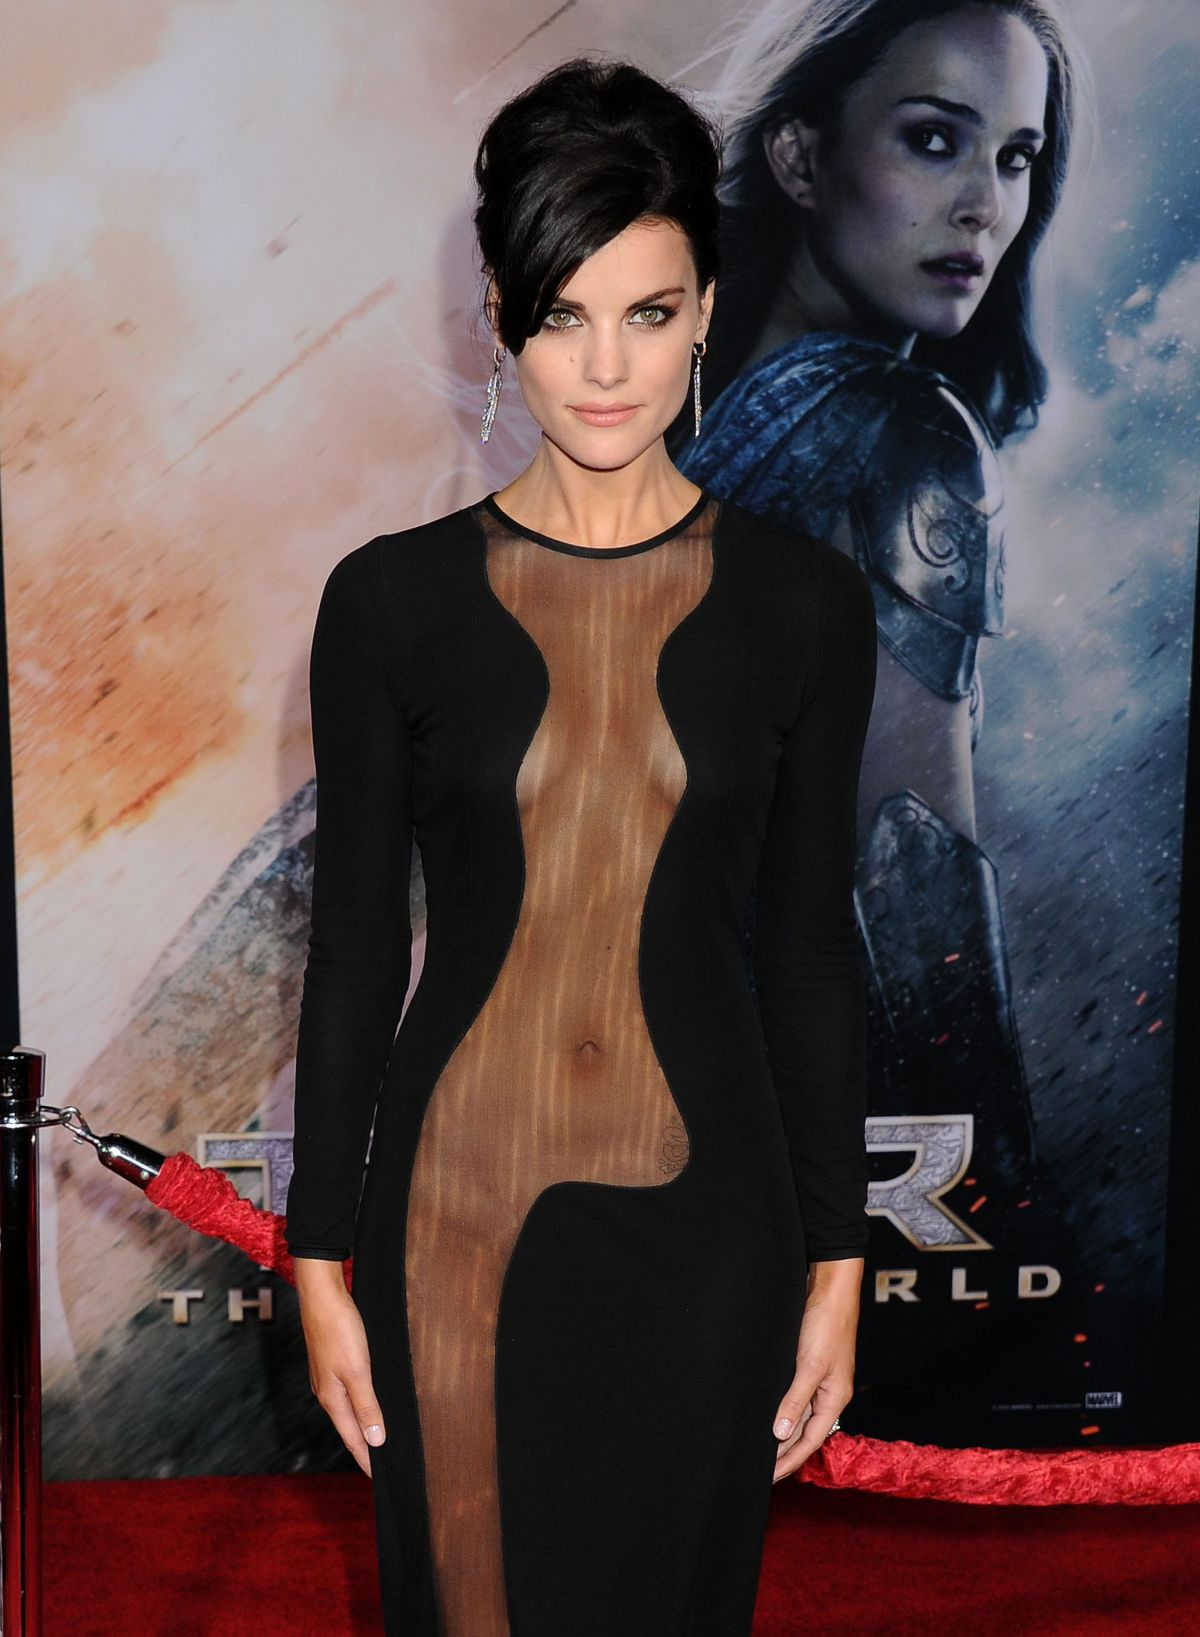 jaimie-alexander-at-thor-the-dark-world-premiere-in-hollywood_10.jpg - 195.62 KB